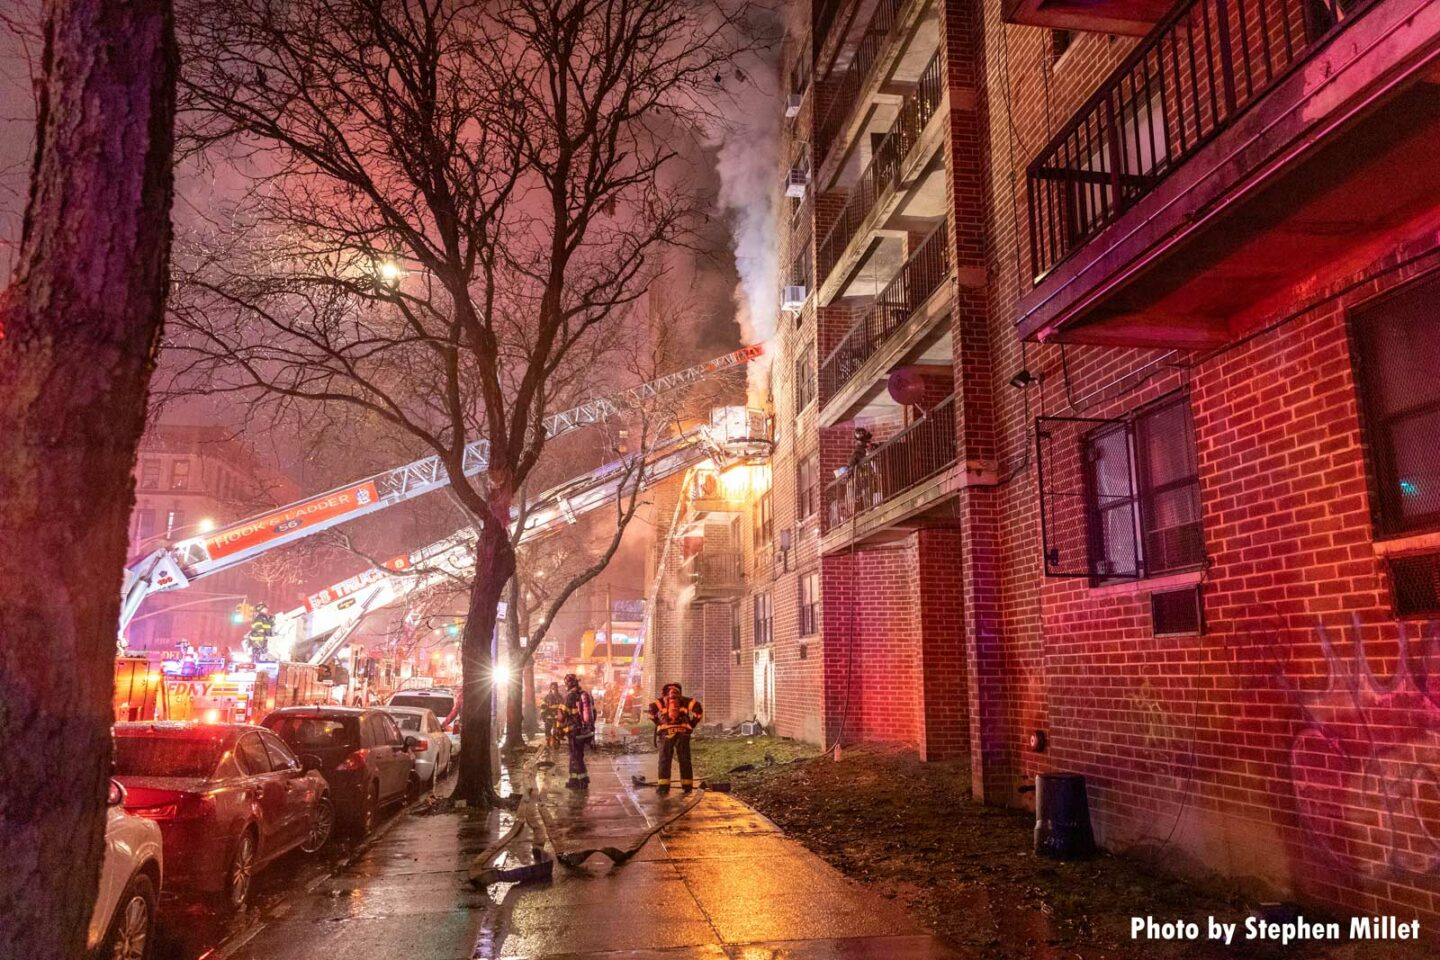 Another view of multiple FDNY aerials being used in the Bronx